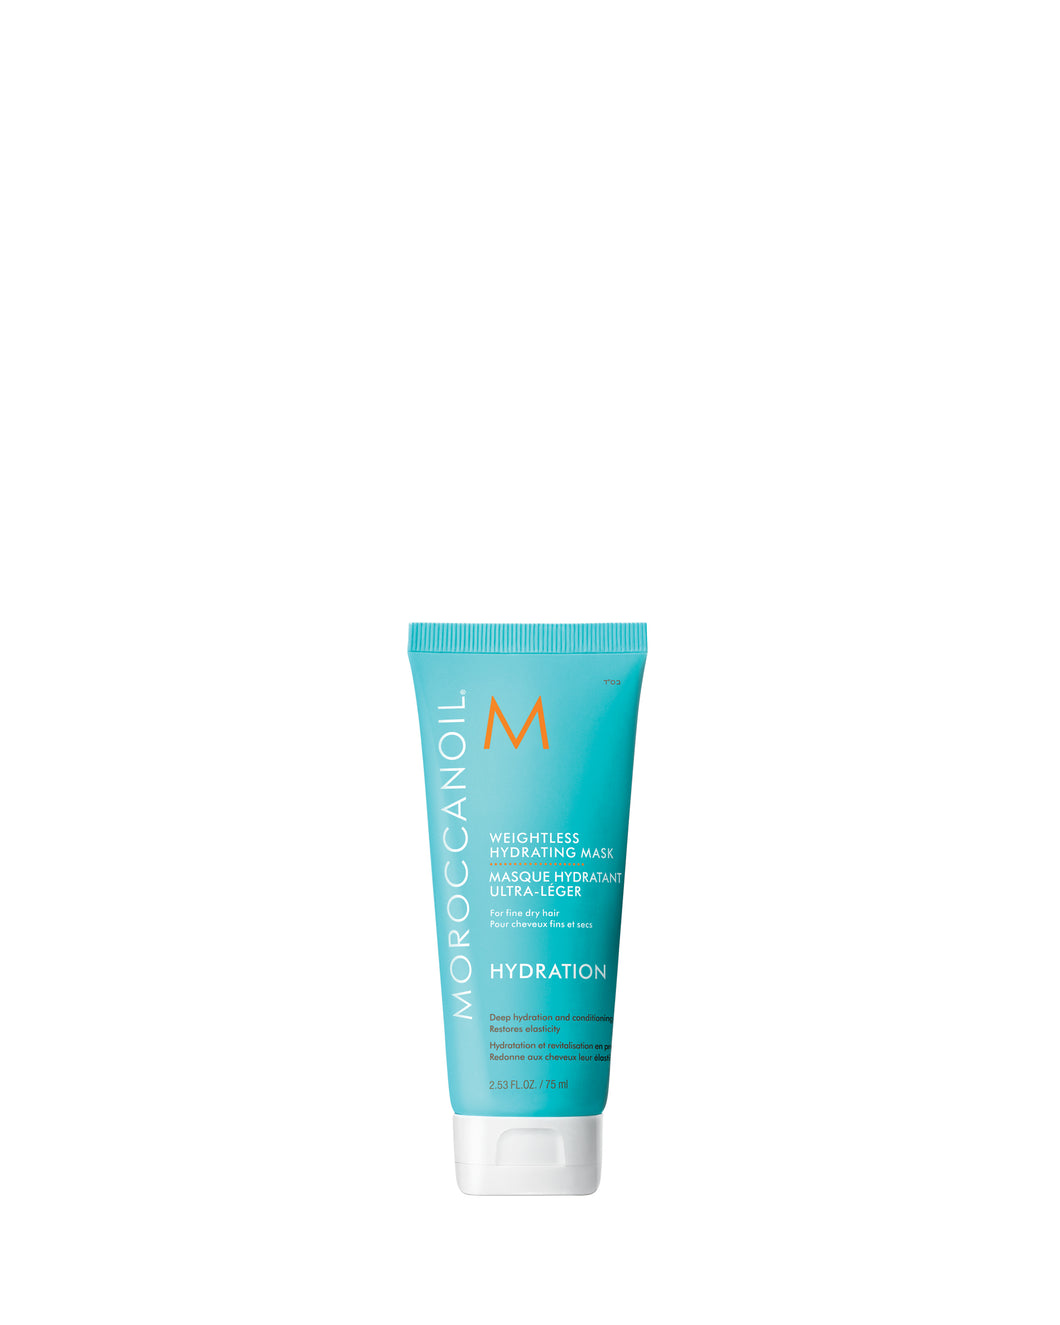 Masque hydratant ultra leger 75 mL